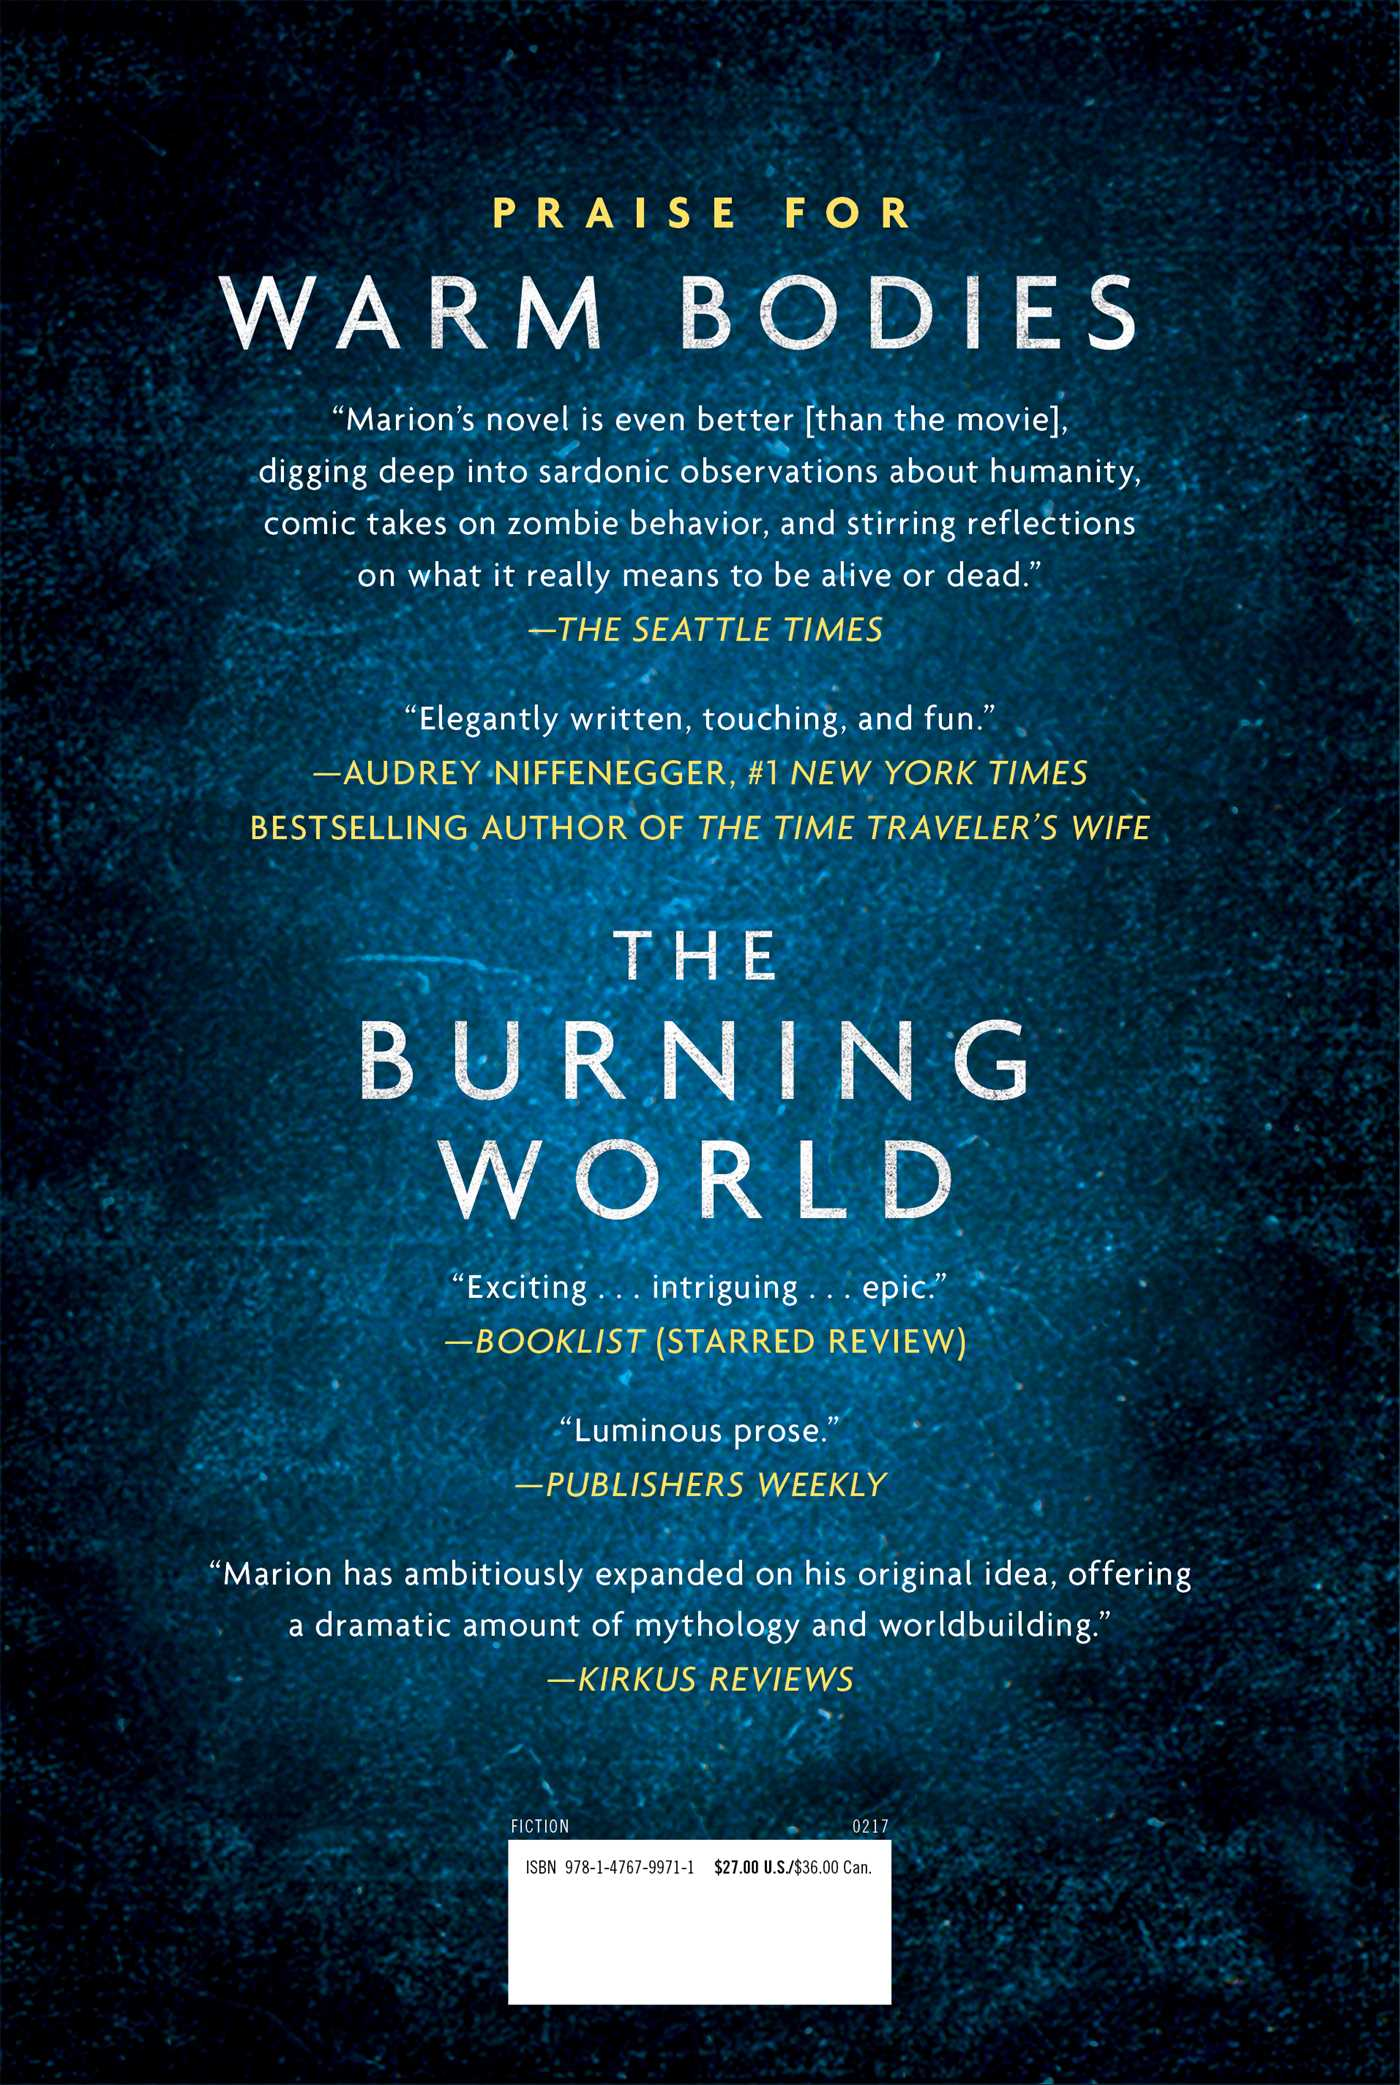 The burning world 9781476799711 hr back